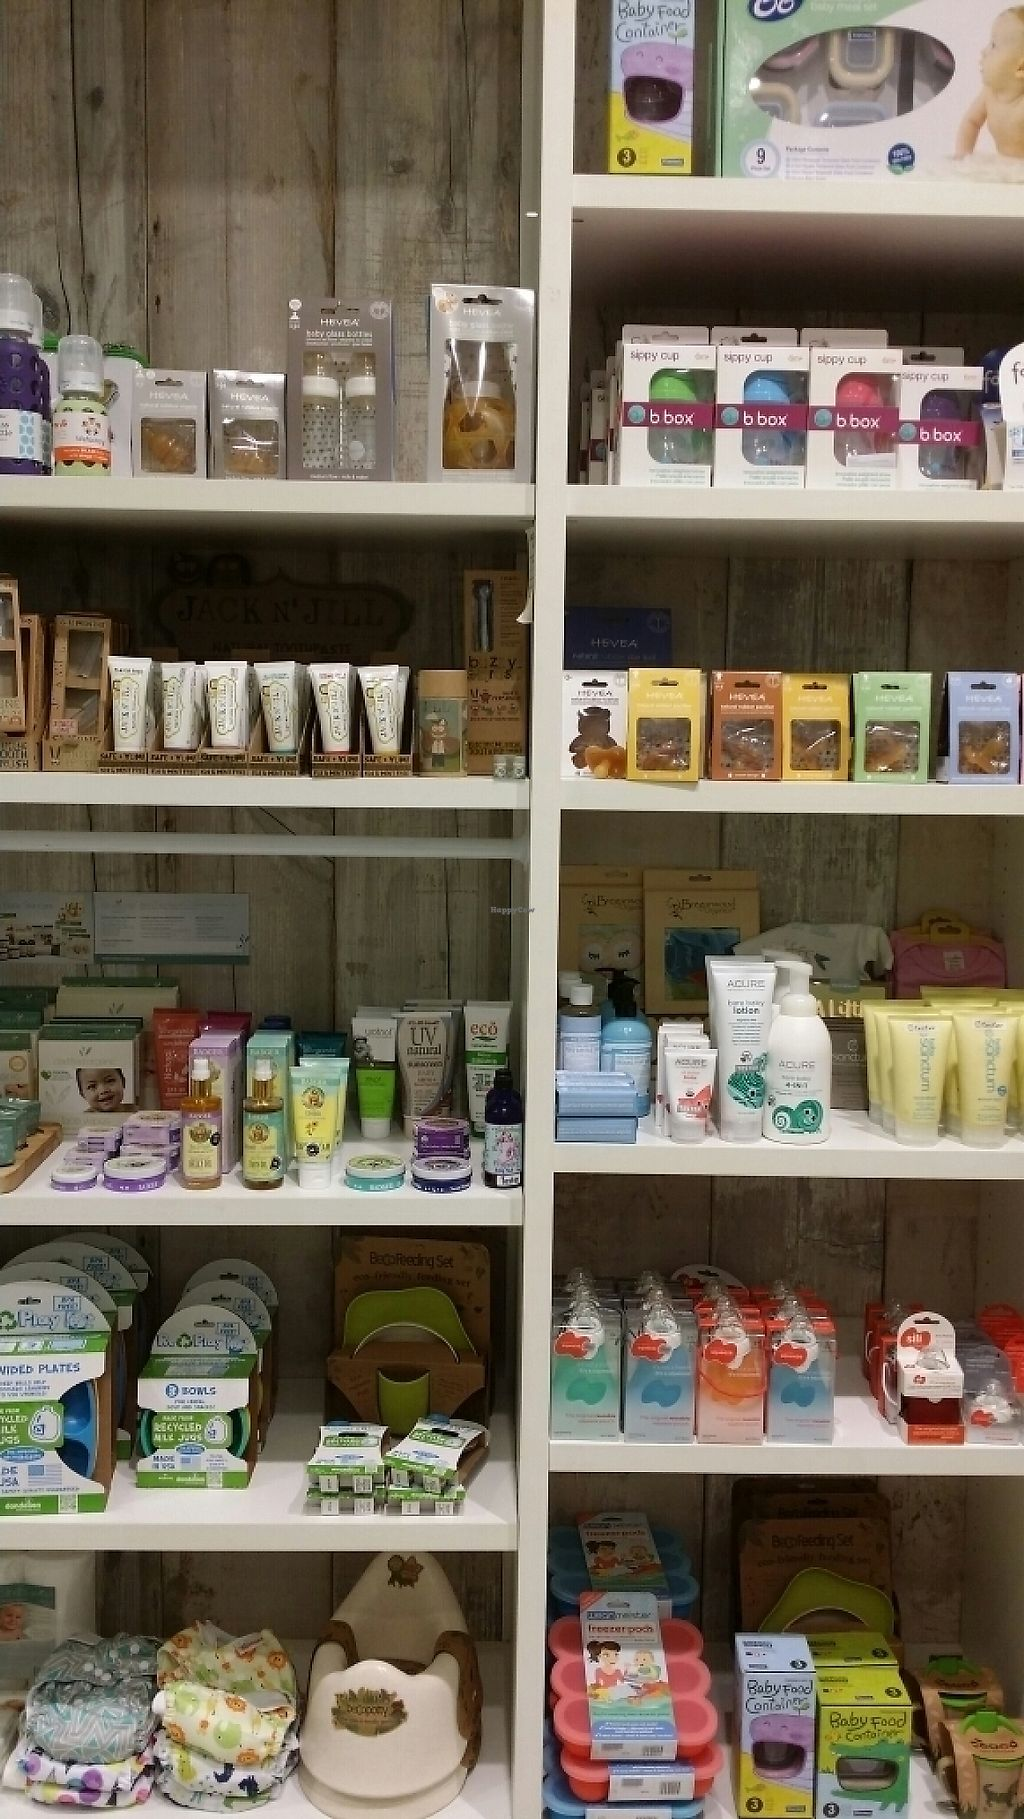 """Photo of Biome Eco Stores  by <a href=""""/members/profile/Mike%20Munsie"""">Mike Munsie</a> <br/>general goods <br/> May 4, 2017  - <a href='/contact/abuse/image/74537/255434'>Report</a>"""